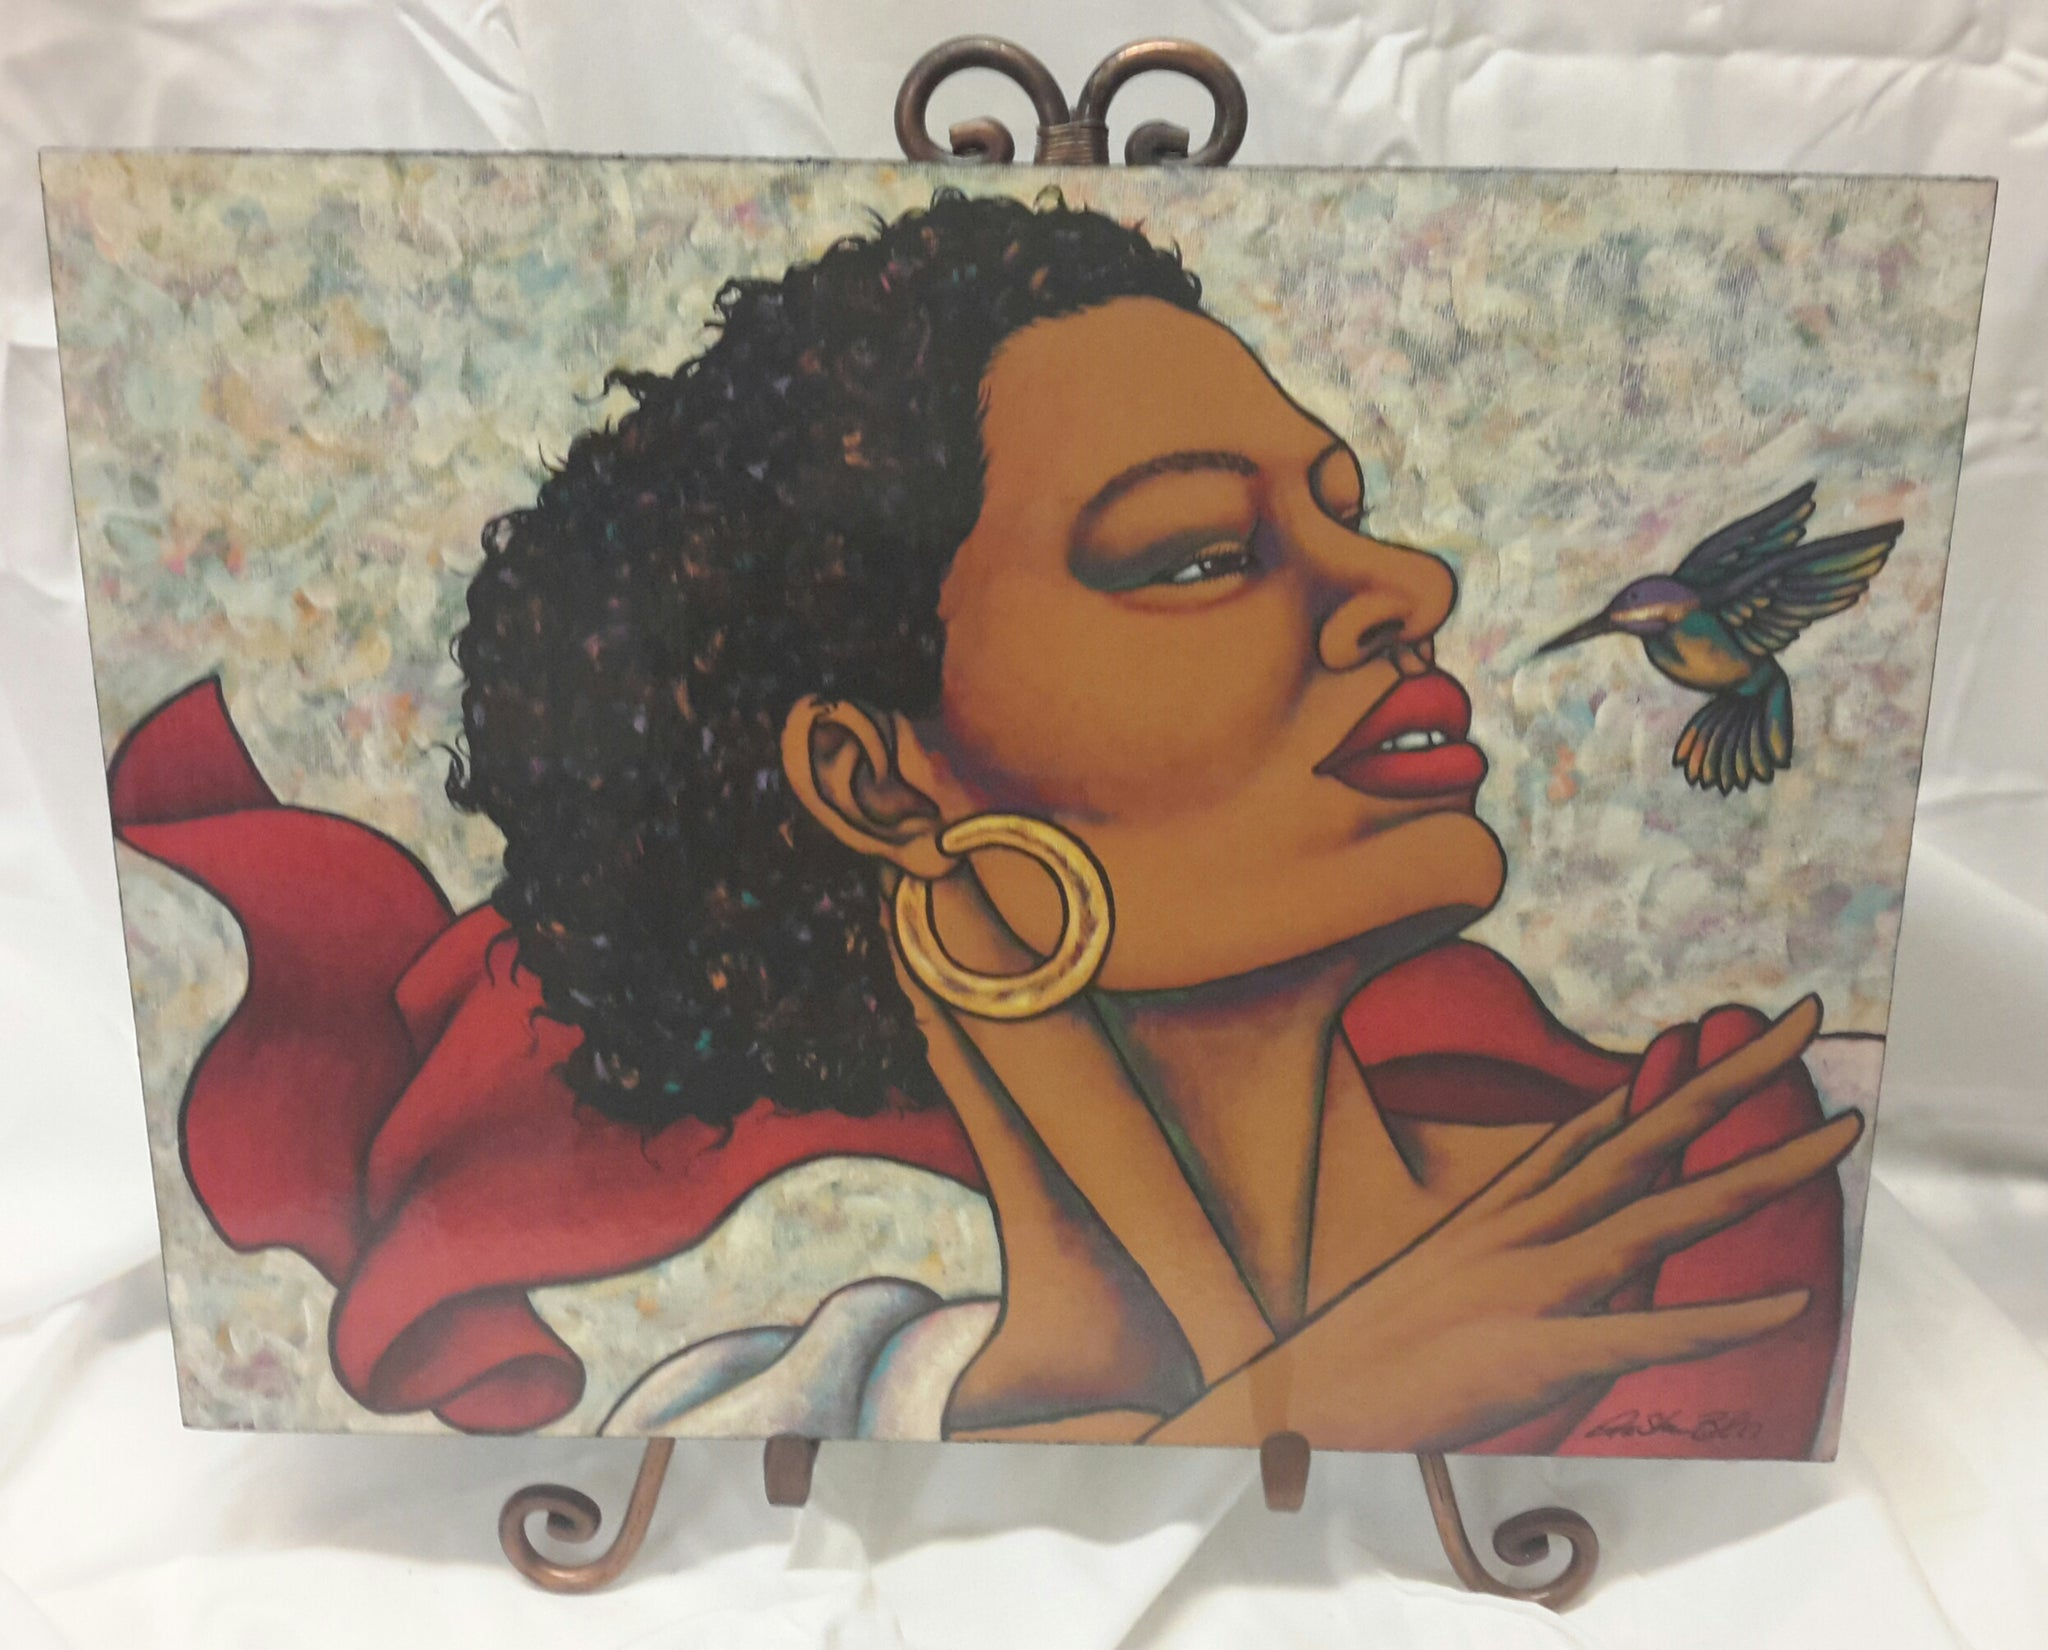 Humming Bird #2 Wall Art Plaque - LaShunBeal.com